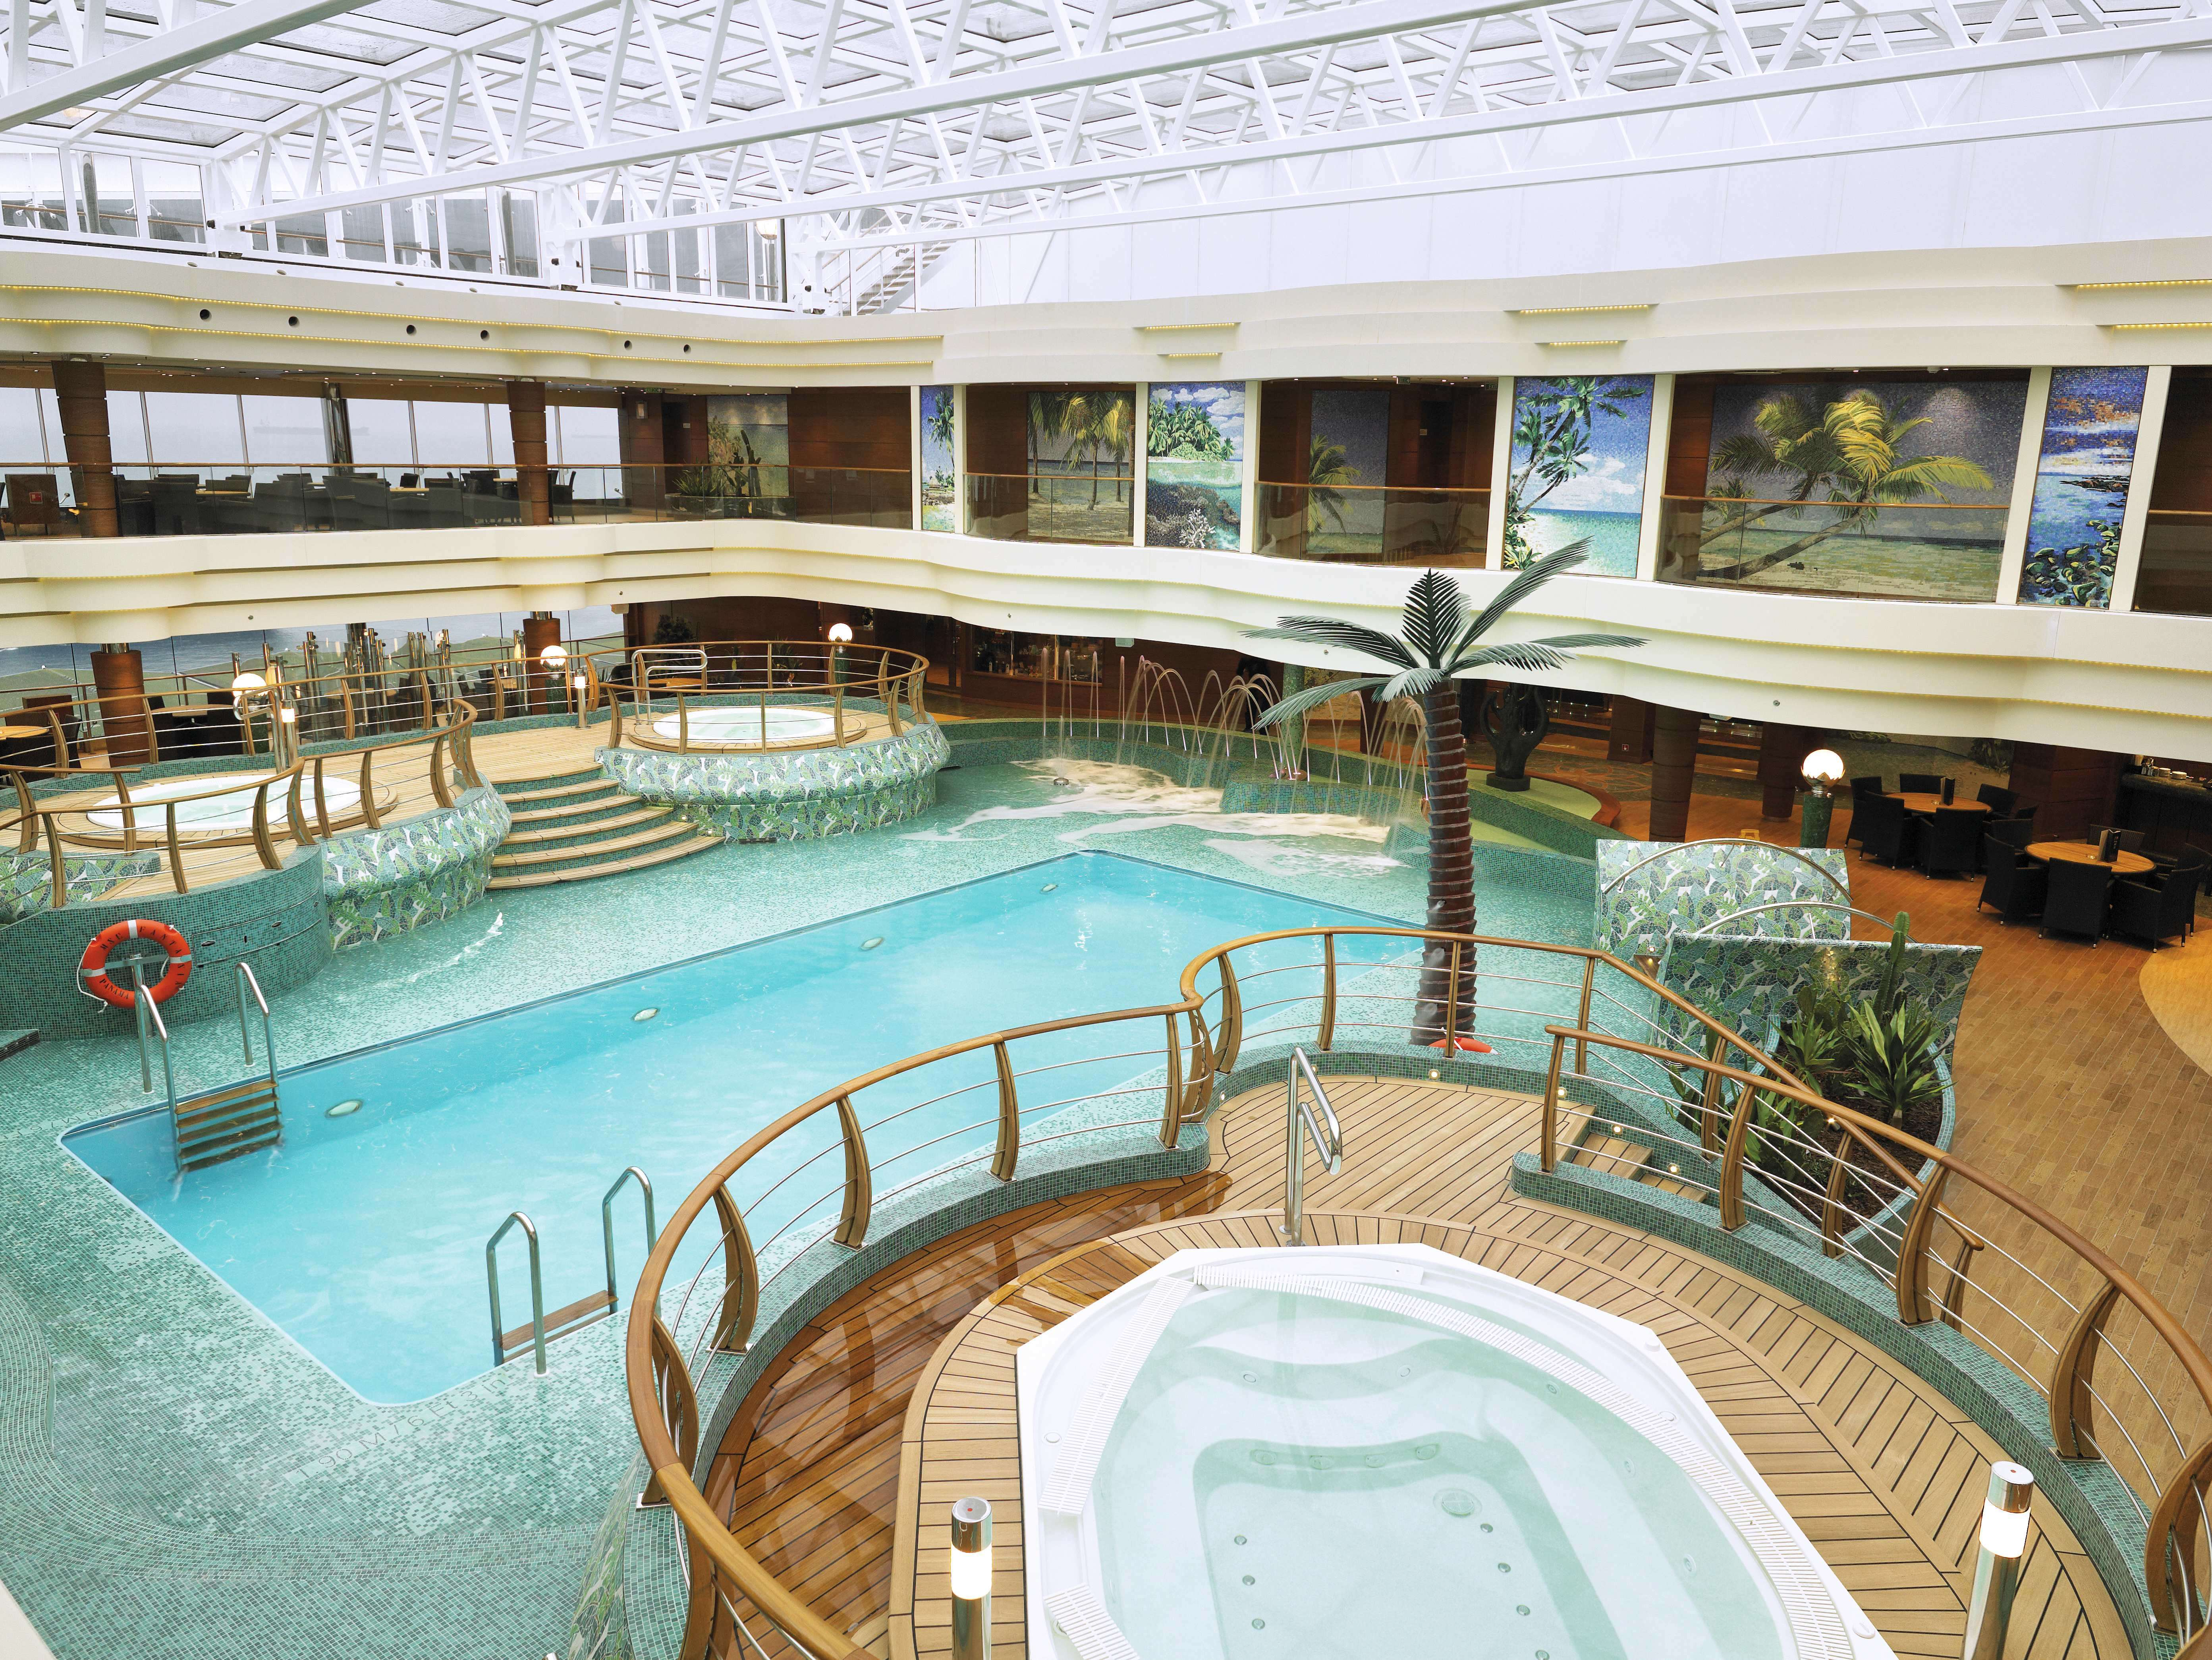 Experience of cruising for the first time